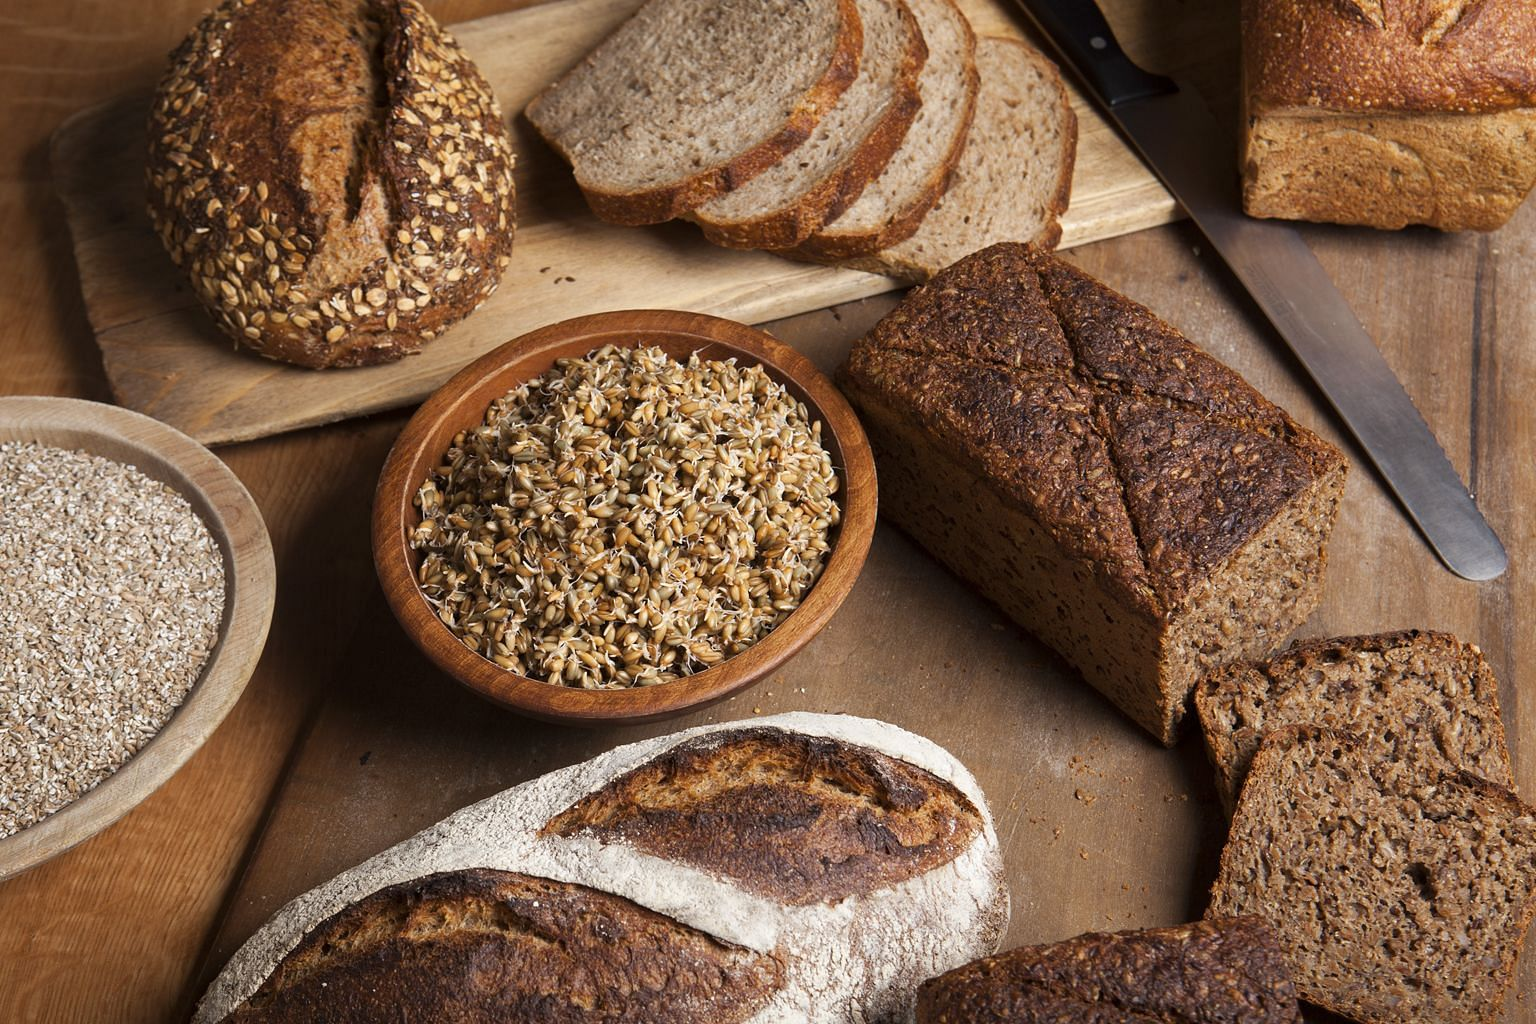 Different rye loaves sold in New York. Rye bread is popular as it contains more fibre and less gluten than wheat.